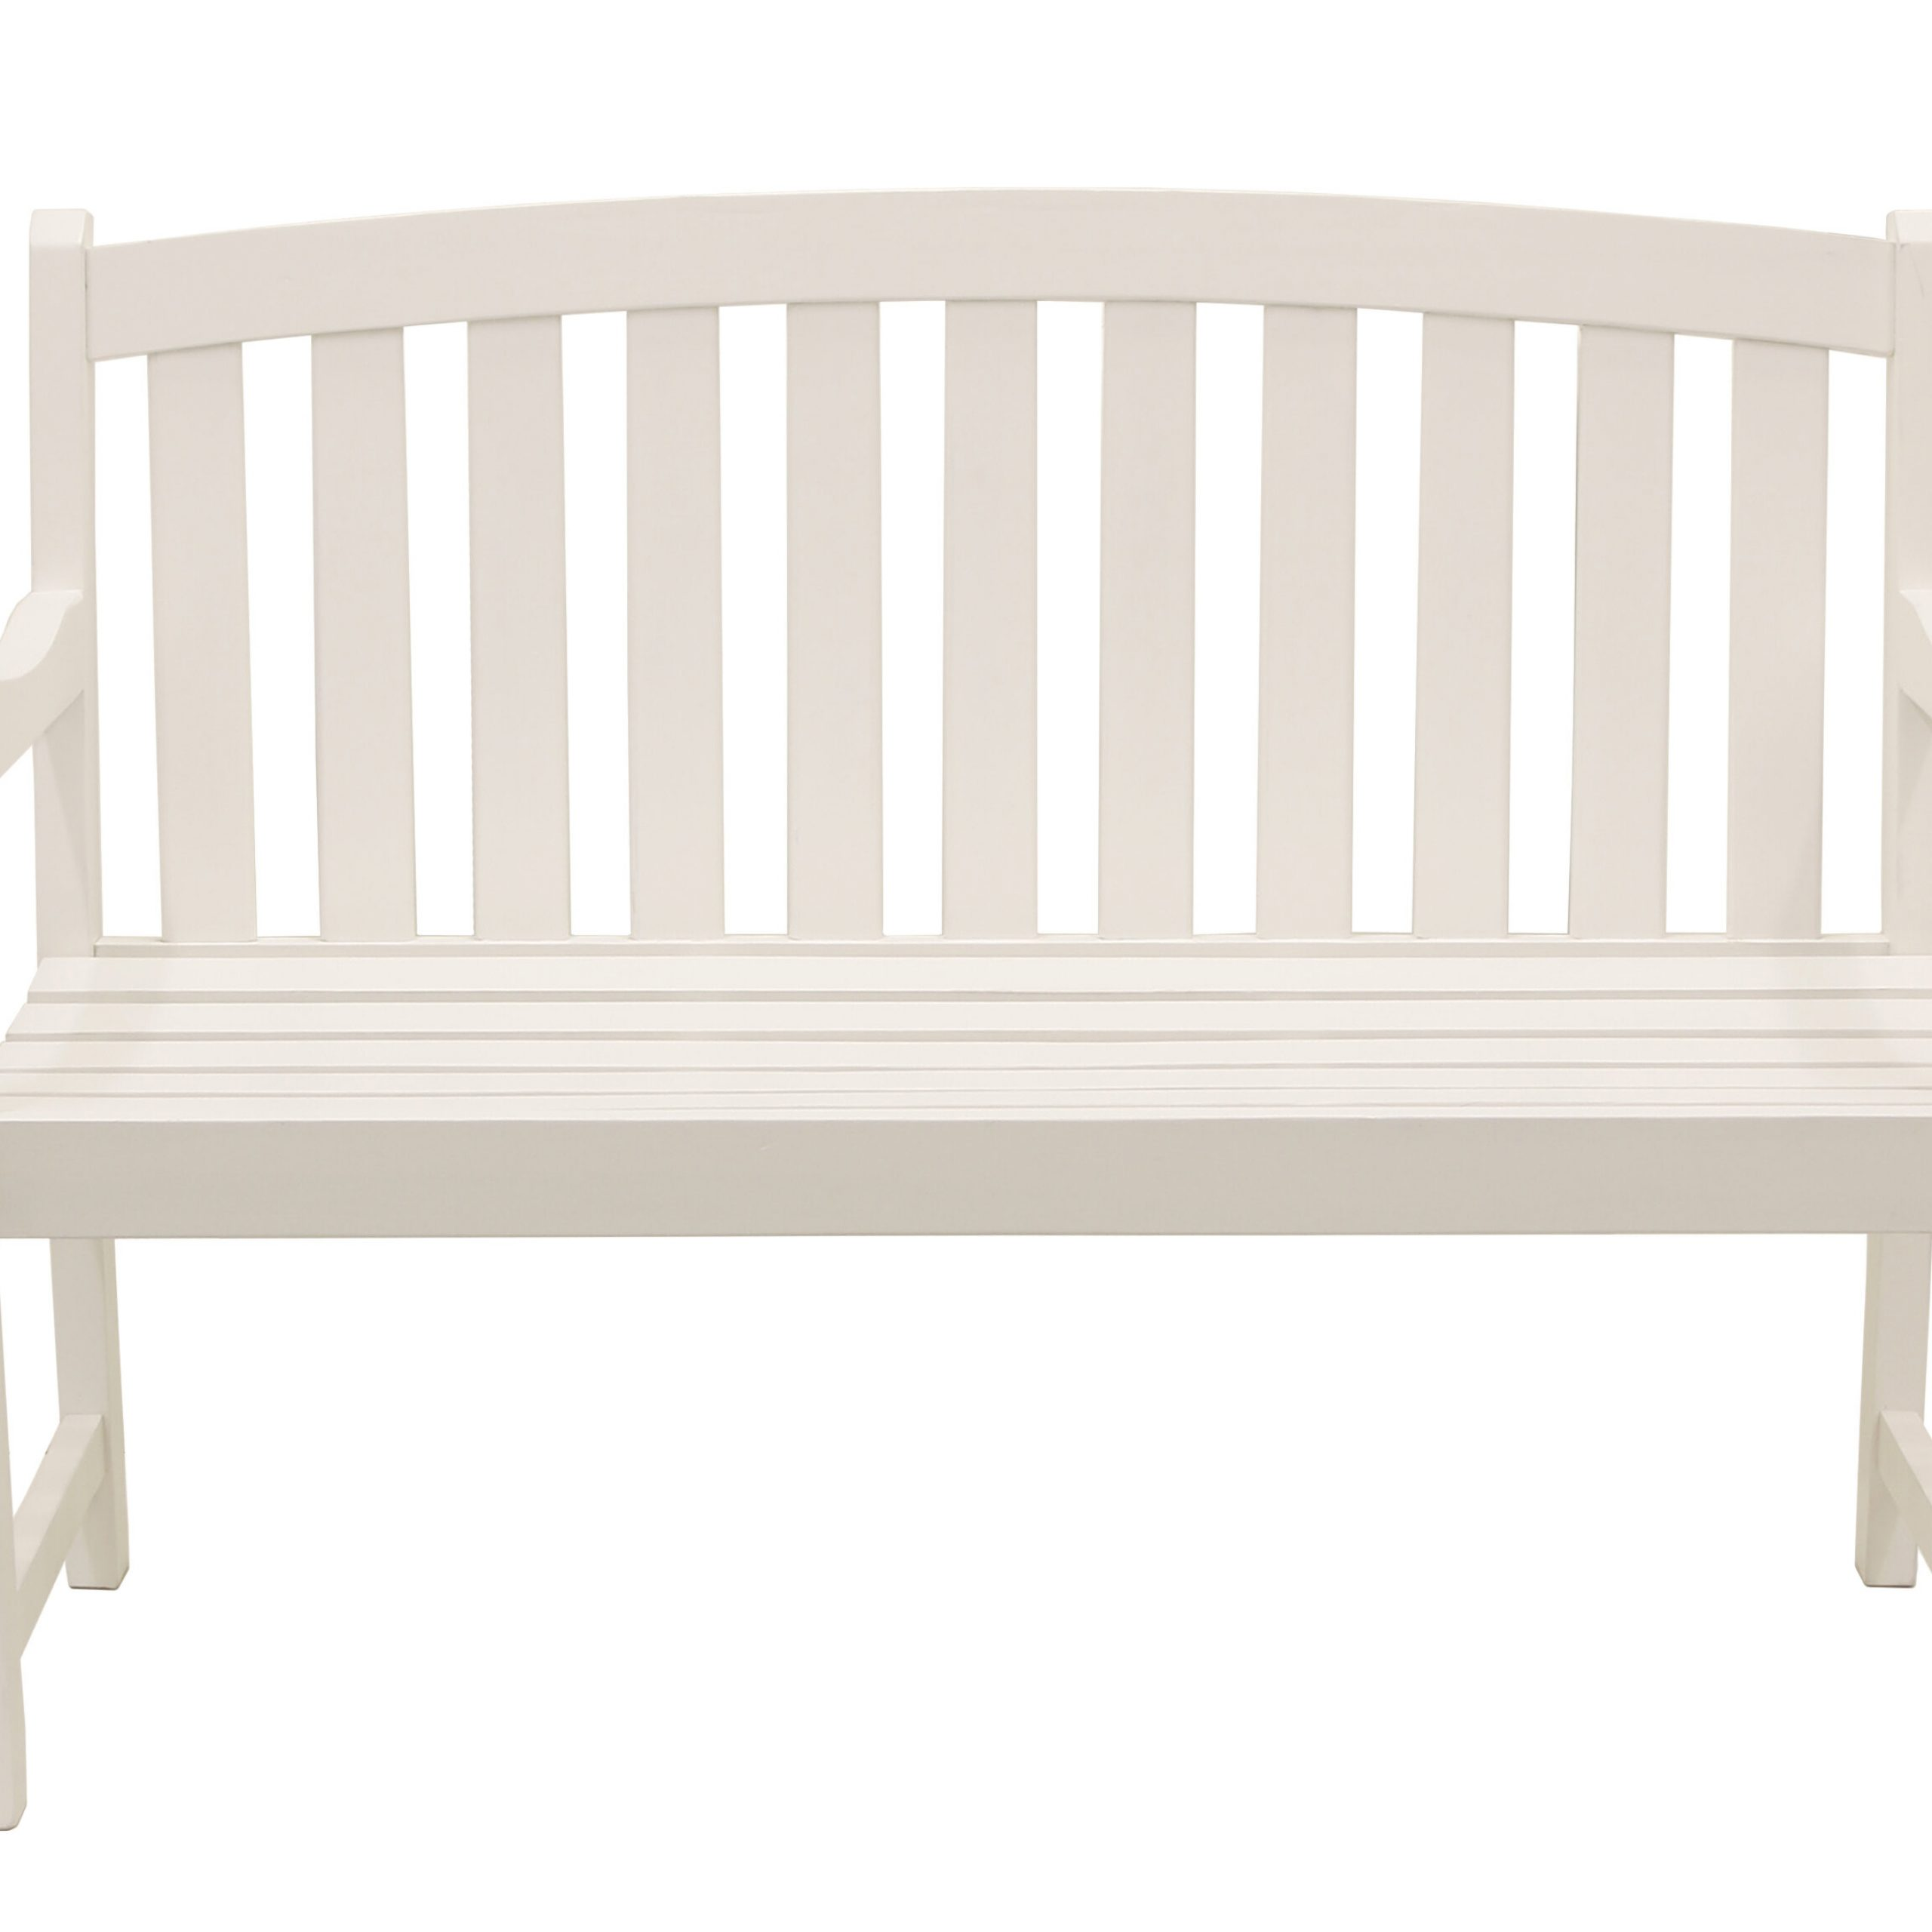 Solid Wood Outdoor Benches You'Ll Love In 2020 | Wayfair Regarding Manchester Solid Wood Garden Benches (View 17 of 25)